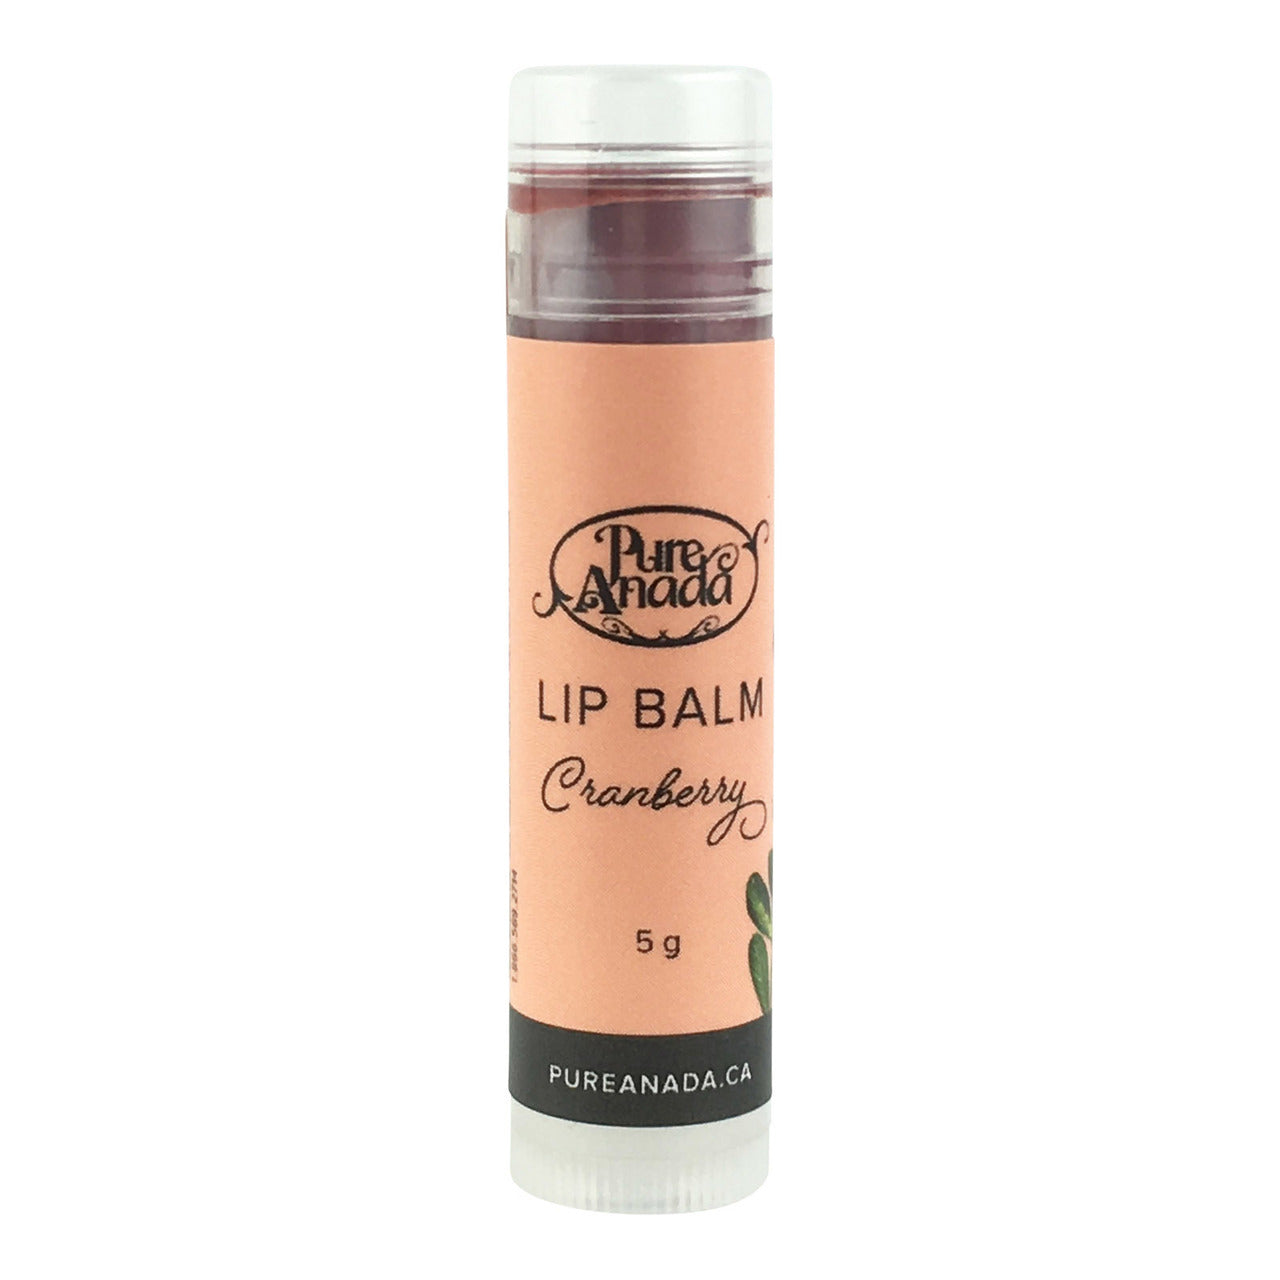 Pure Anada Lip Balm - Cranberry (tinted)